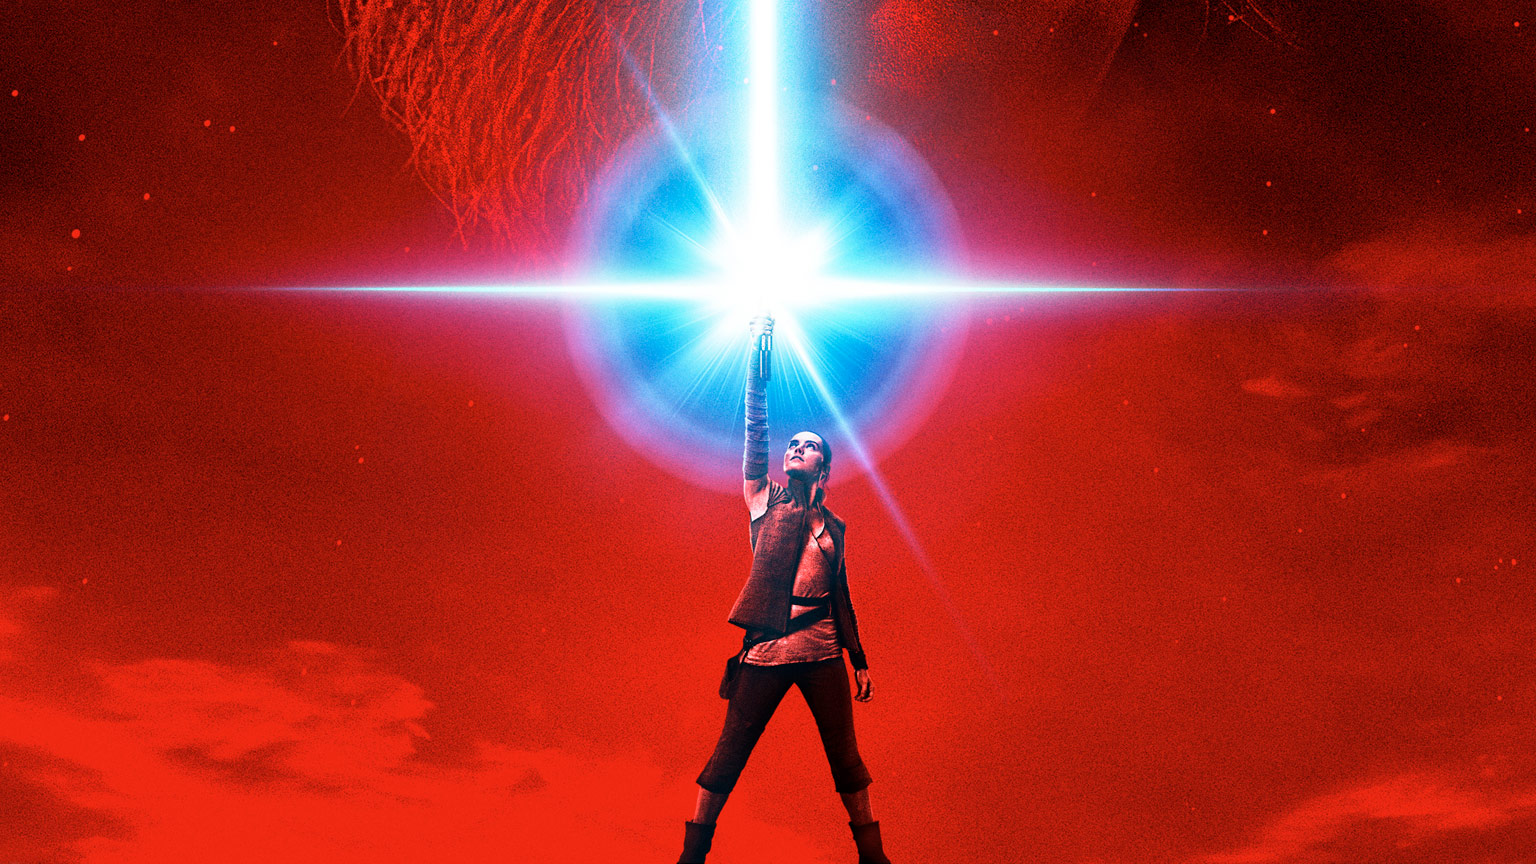 'Star Wars: The Last Jedi' teaser poster